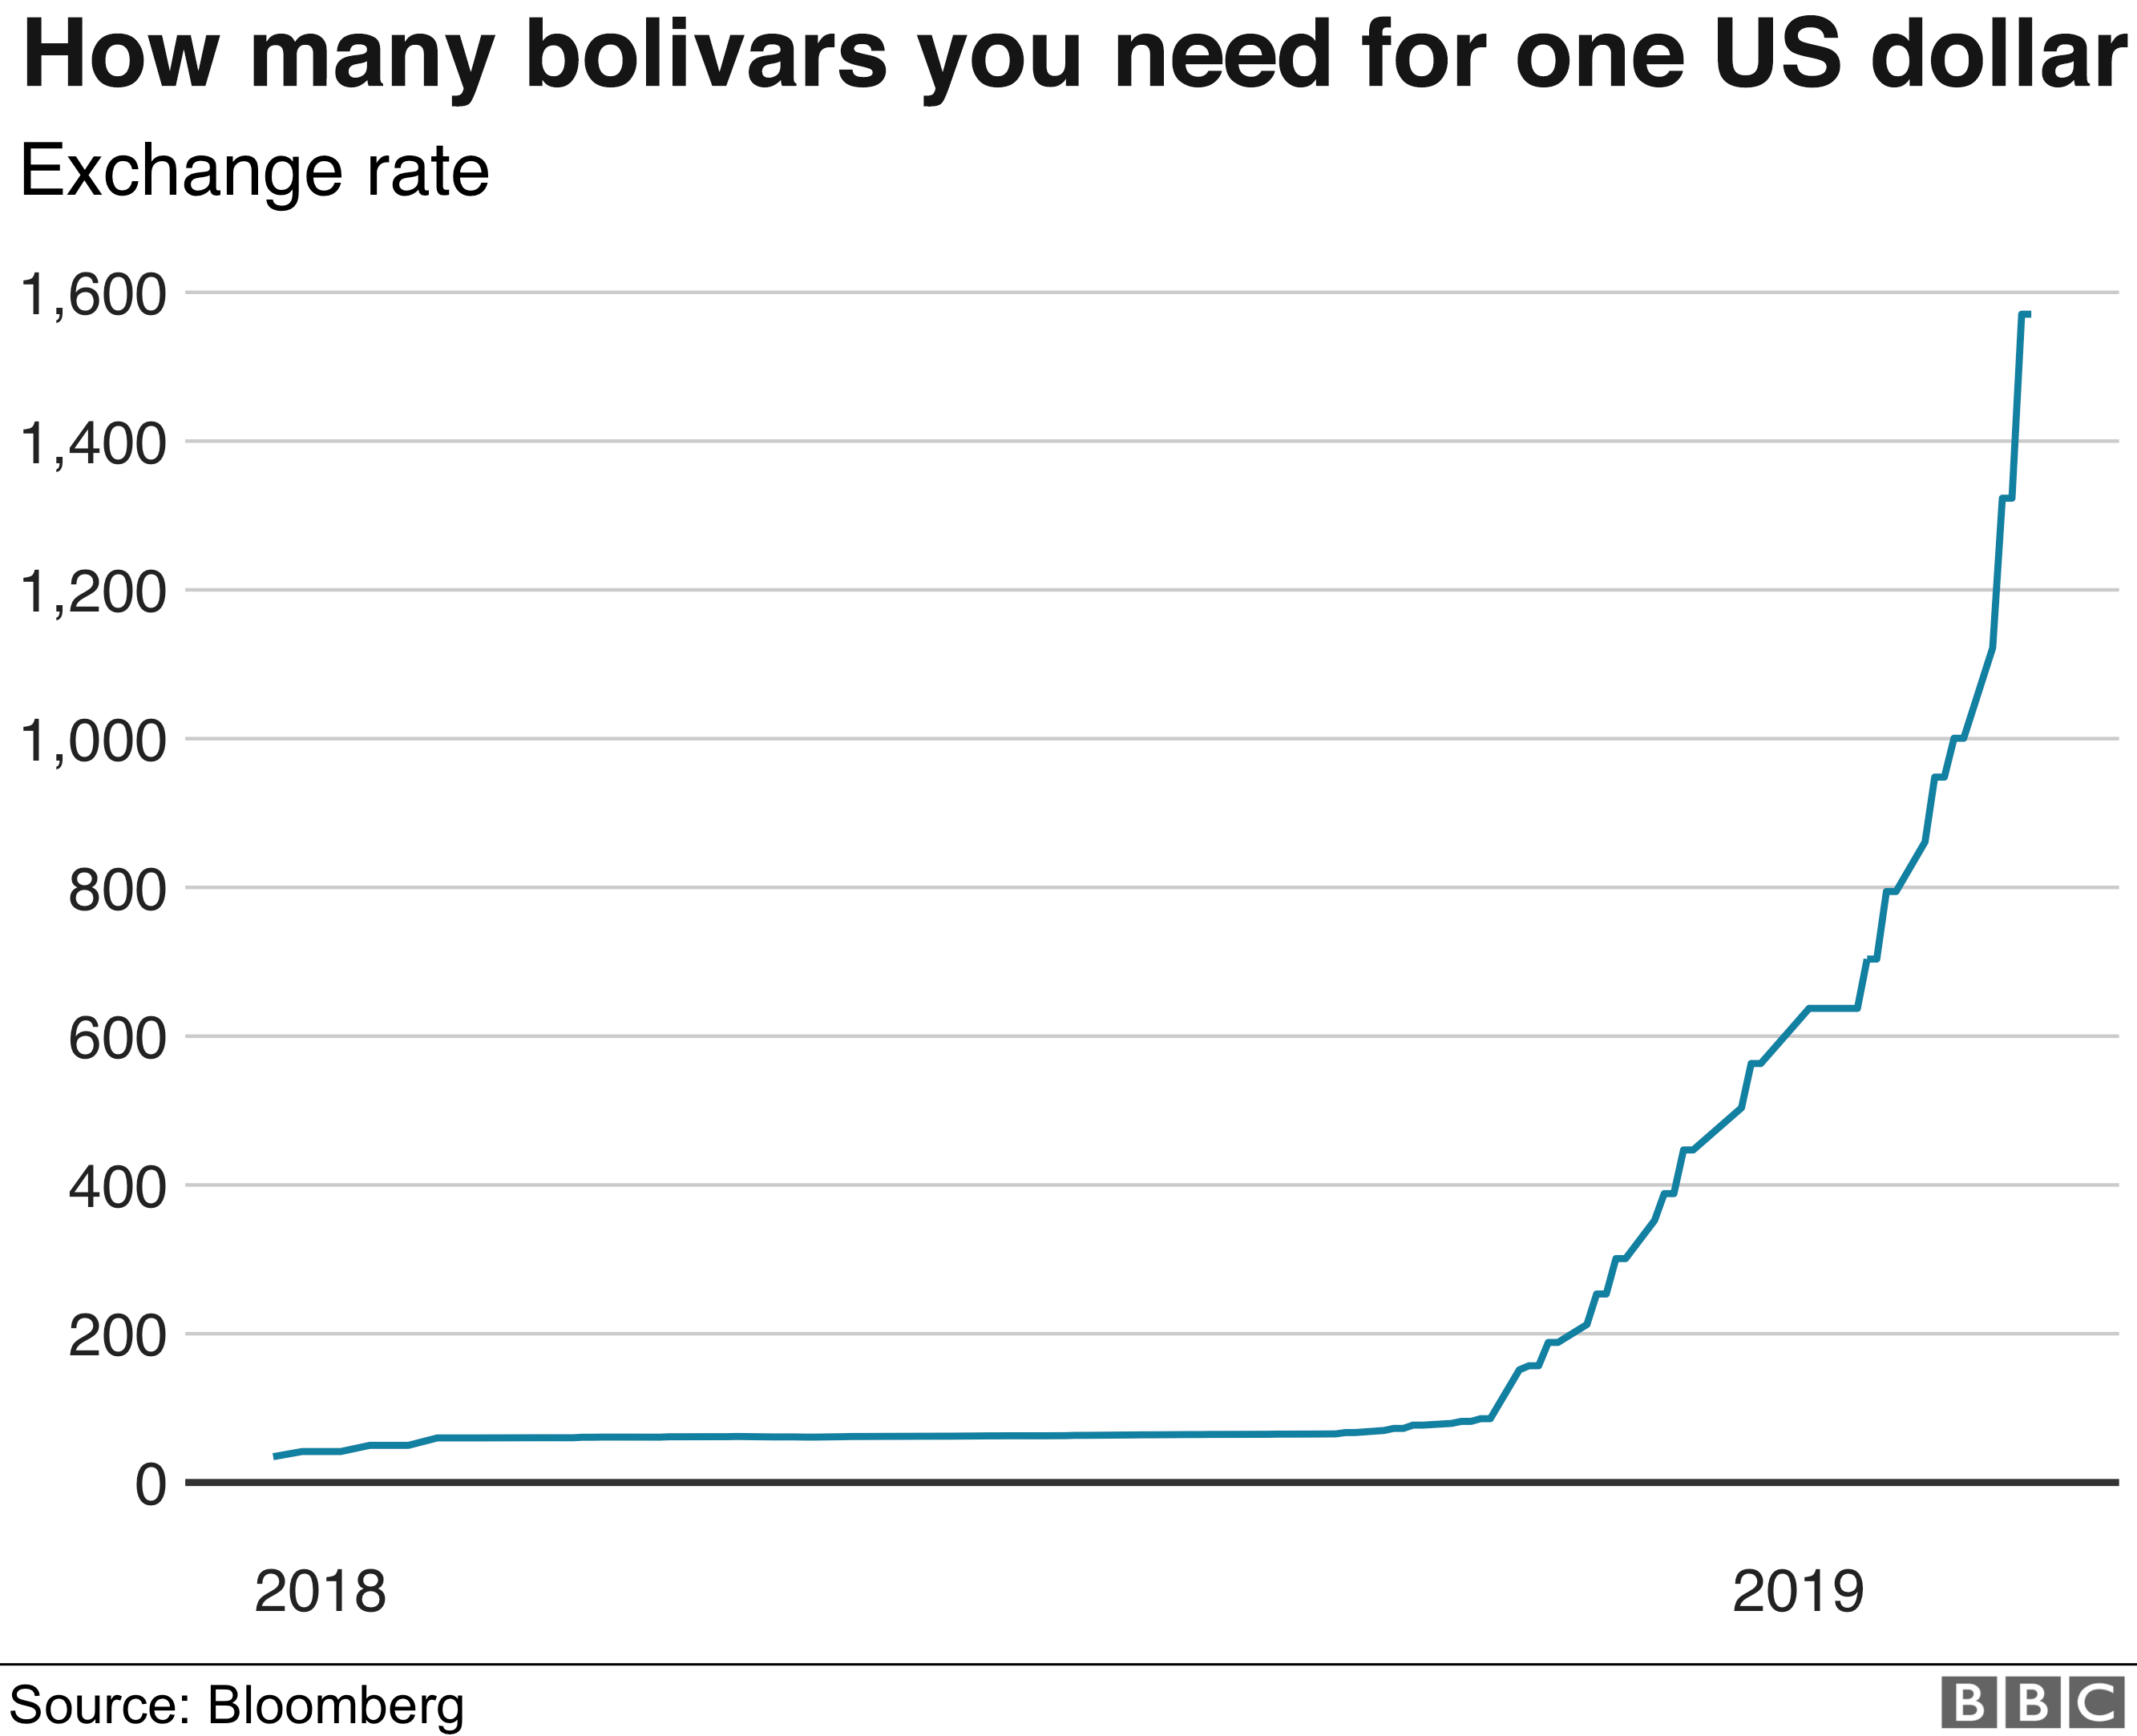 Bolivars to dollar exchange rate